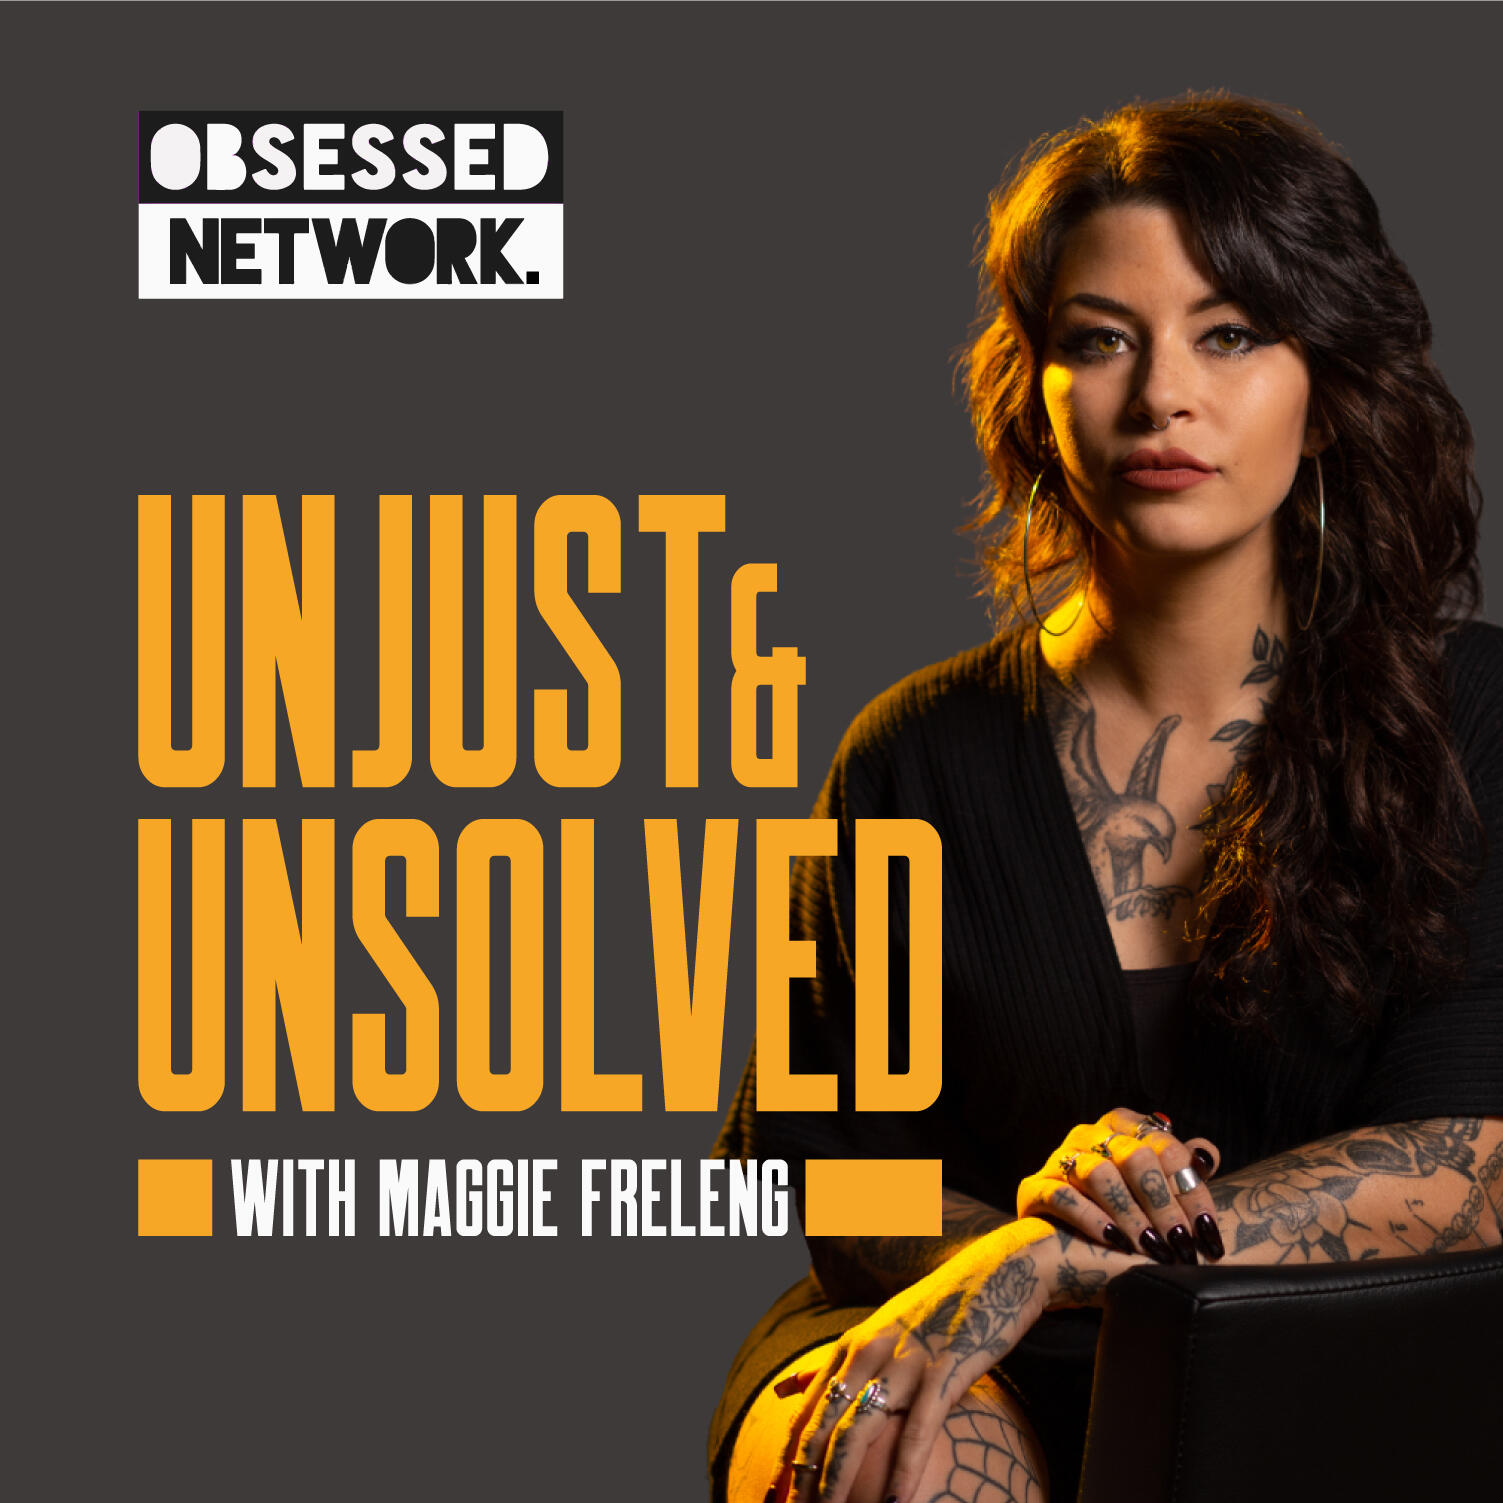 PREVIEW: Unjust and Unsolved